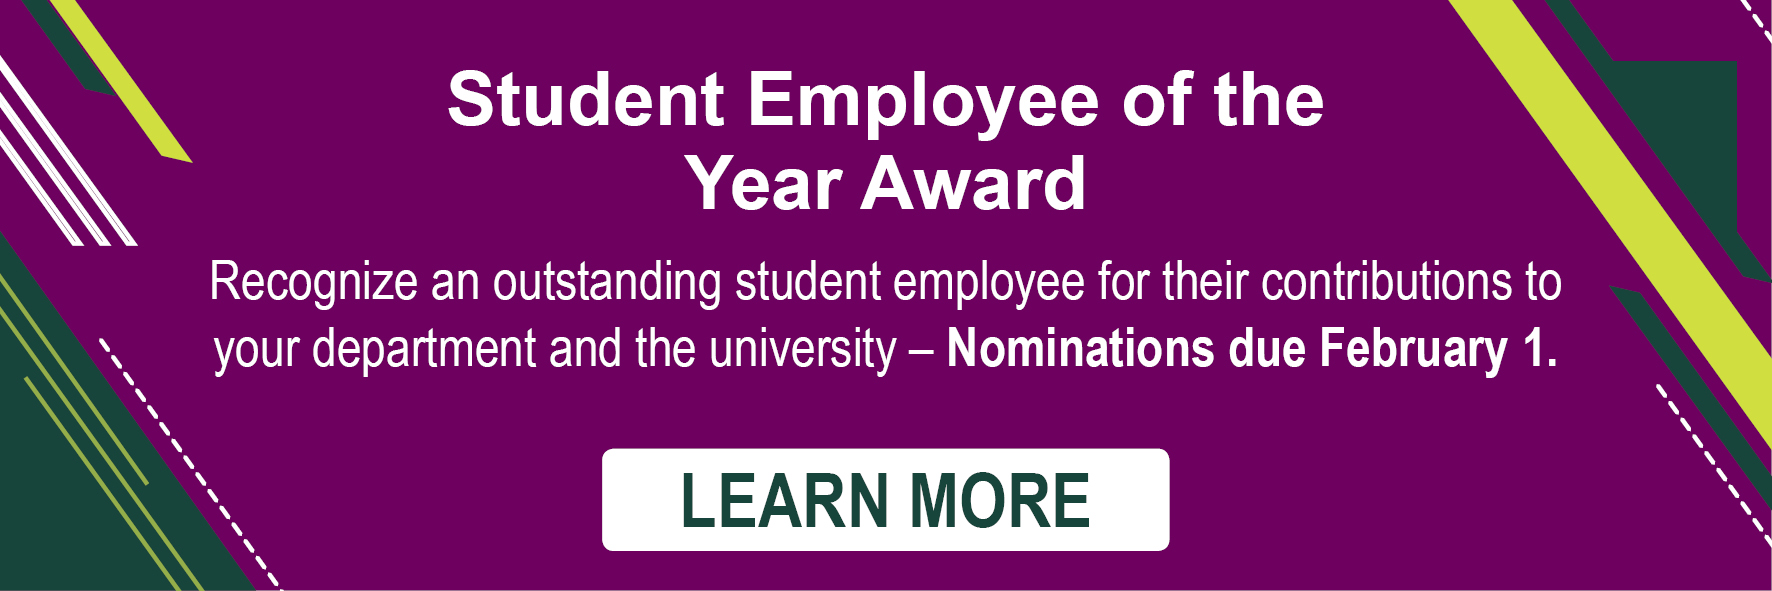 Student of the Year Award Nominations